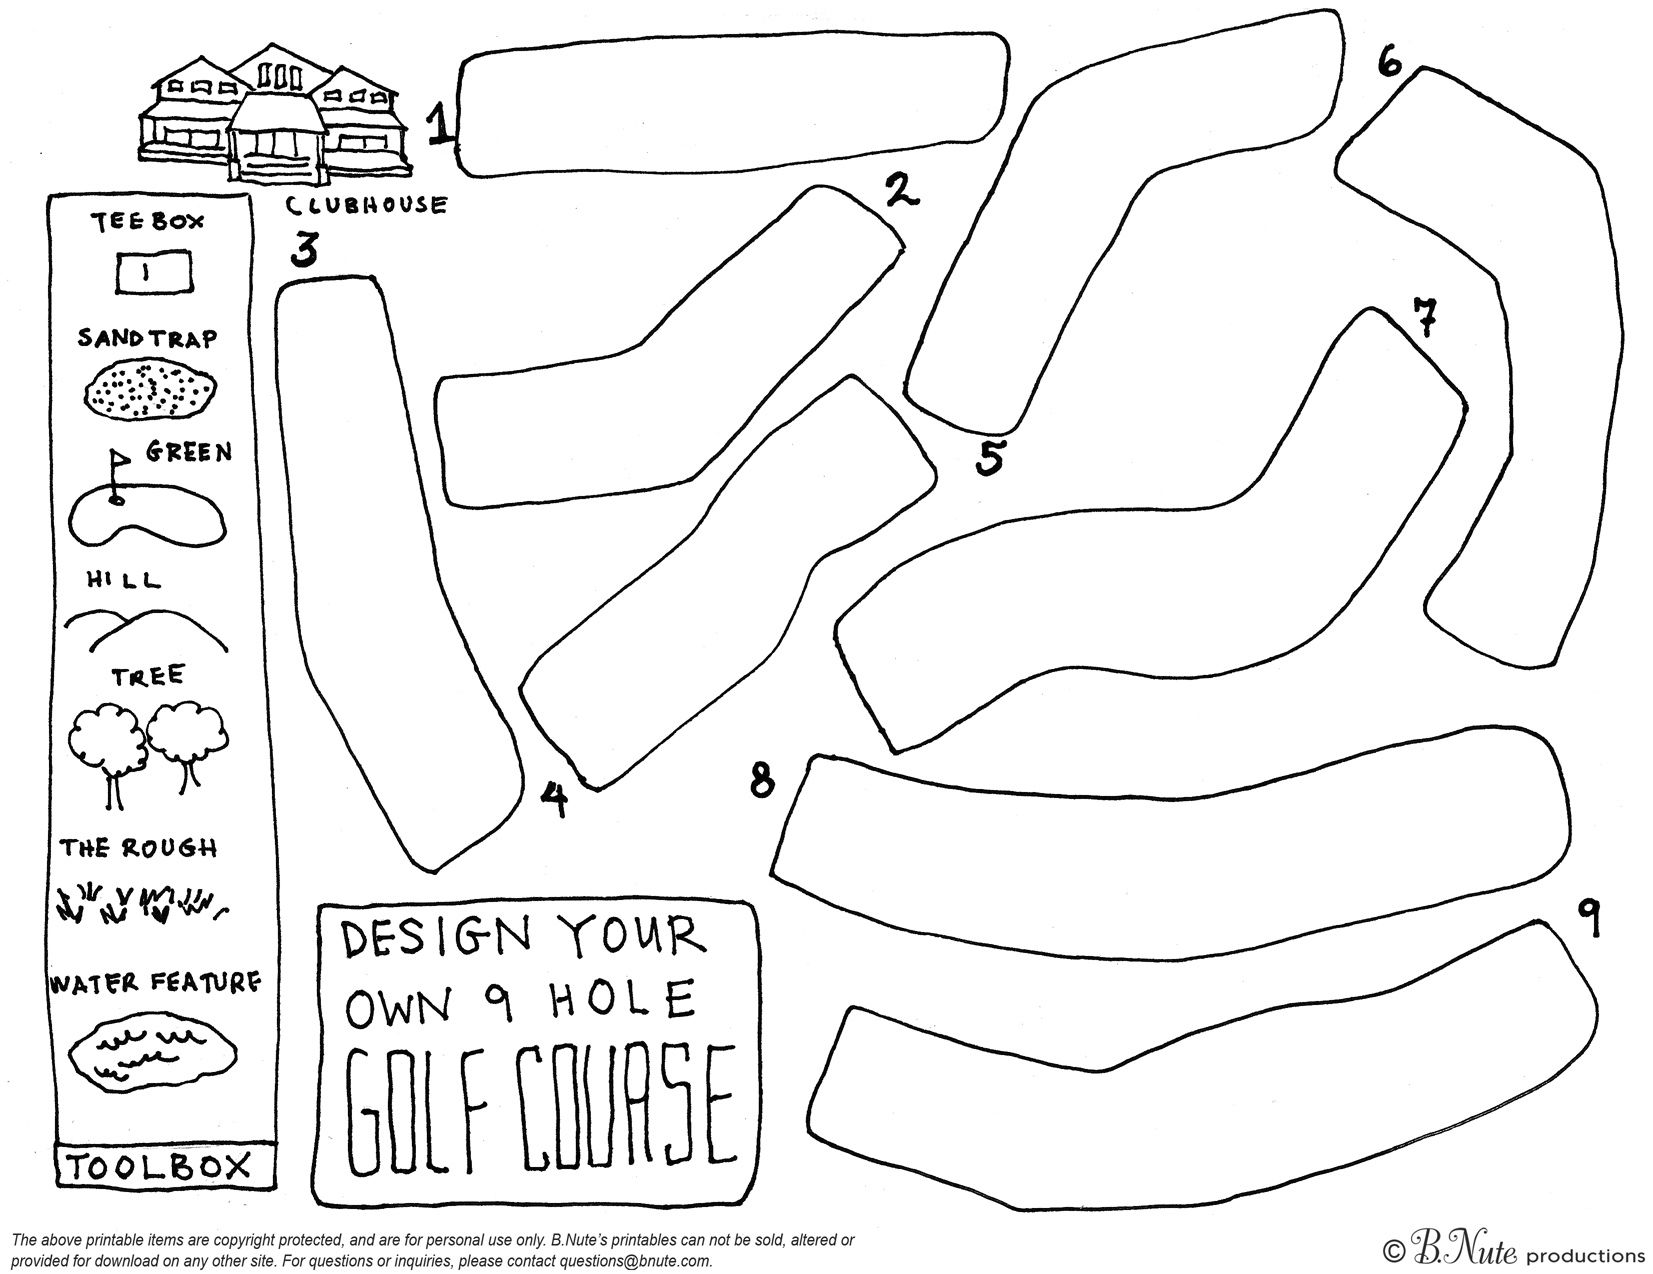 Free Printable Design Your Own 9 Hole Golf Course 9 Hole Golf